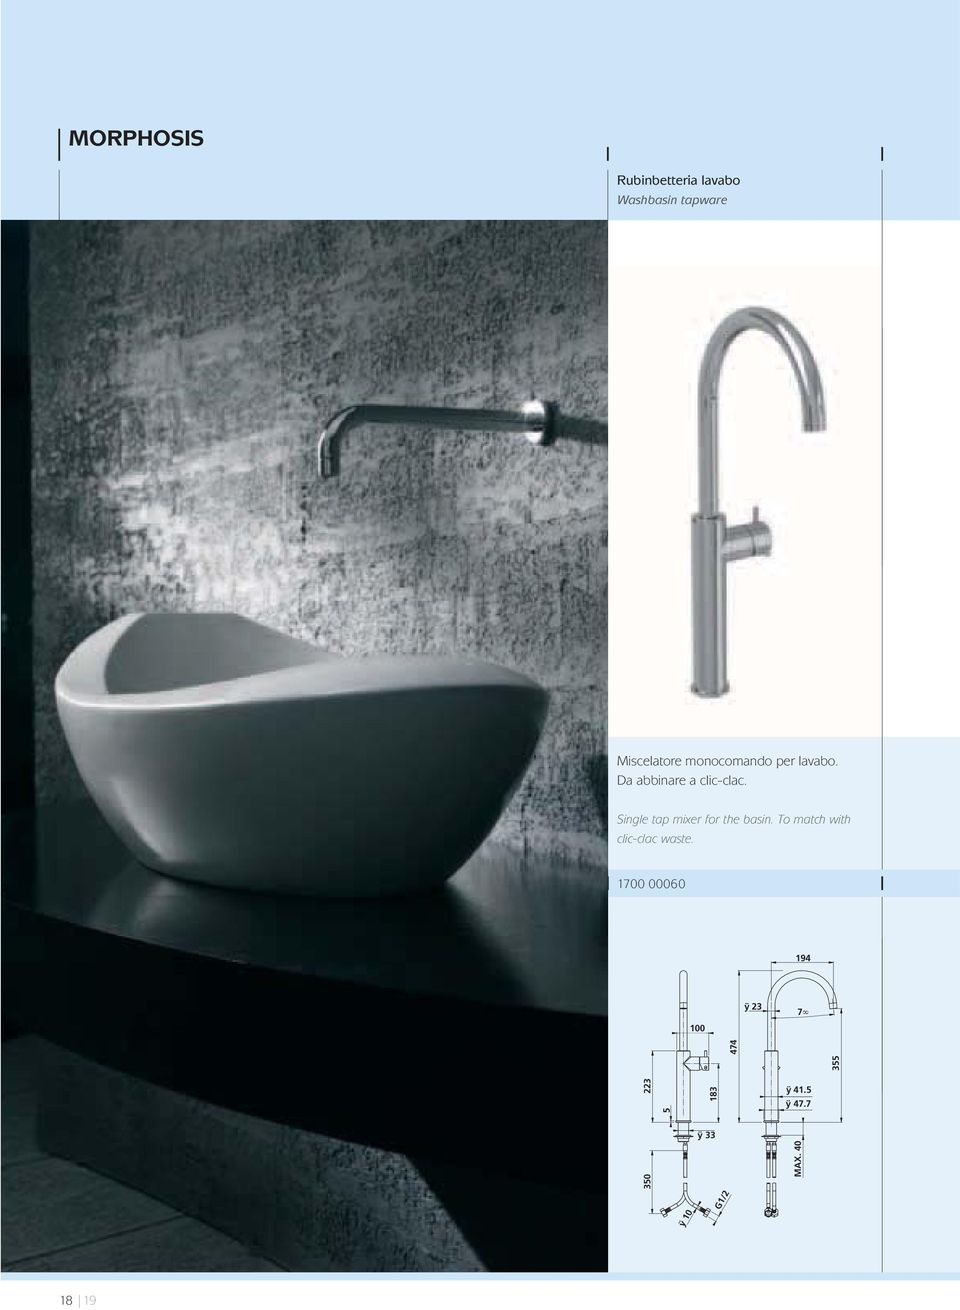 Single tap mixer for the basin. To match with clic-clac waste.